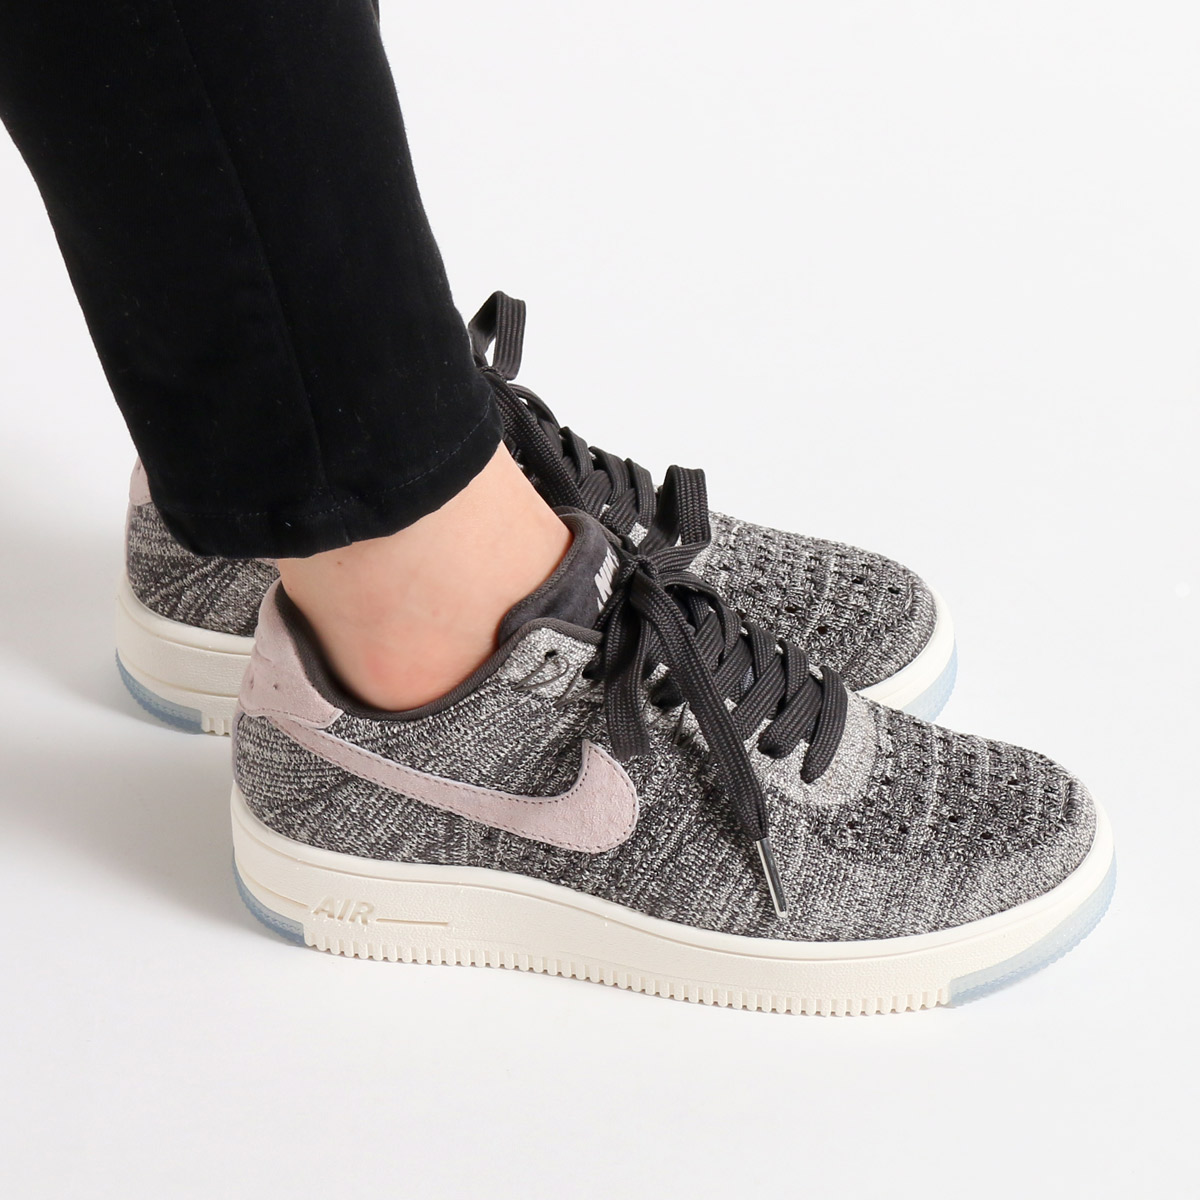 f7691cdf79f9 NIKE W AF1 FLYKNIT LOW (Nike women AF1 fly knit low) MIDNIGHT FOG SILT RED- IVORY-STRING 17FA-I